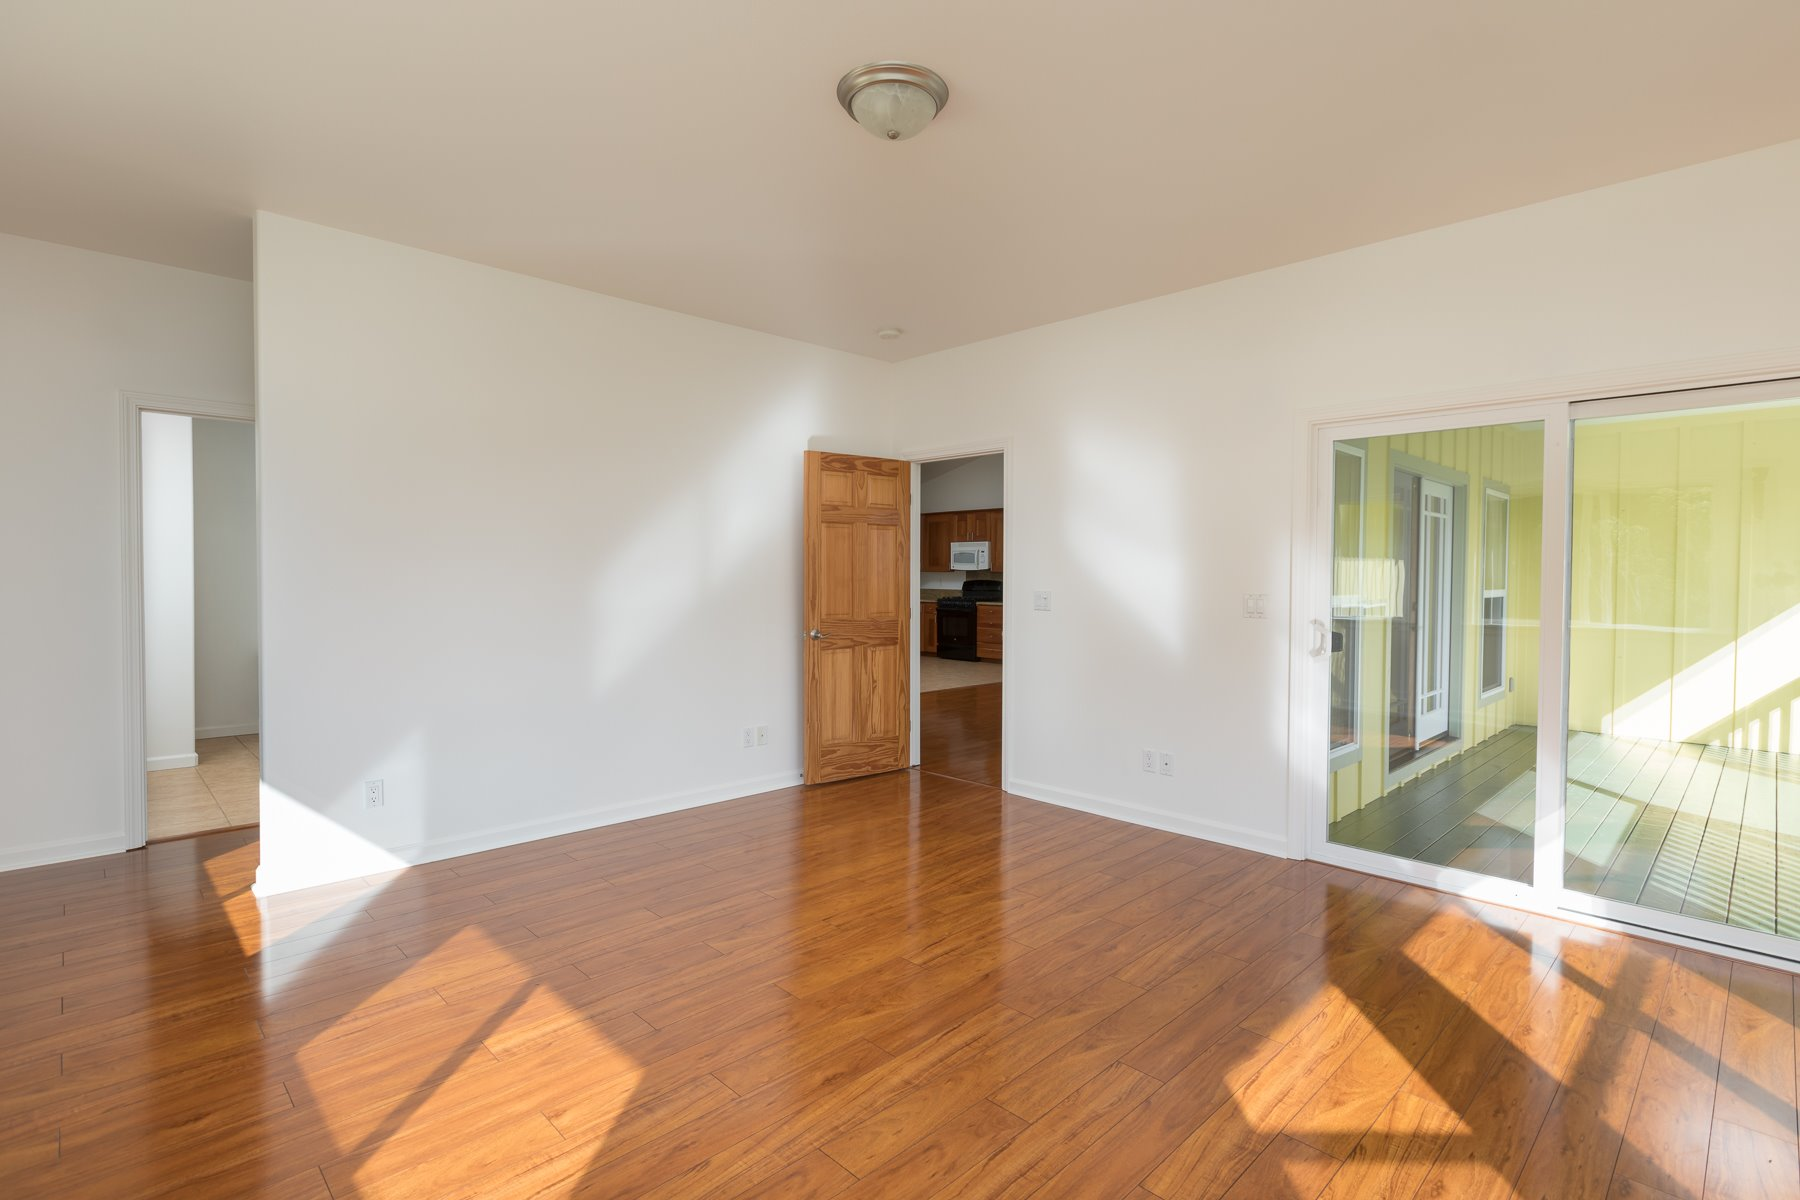 Master Bedroom leads right to lanai and left to the living room and kitchen areas.